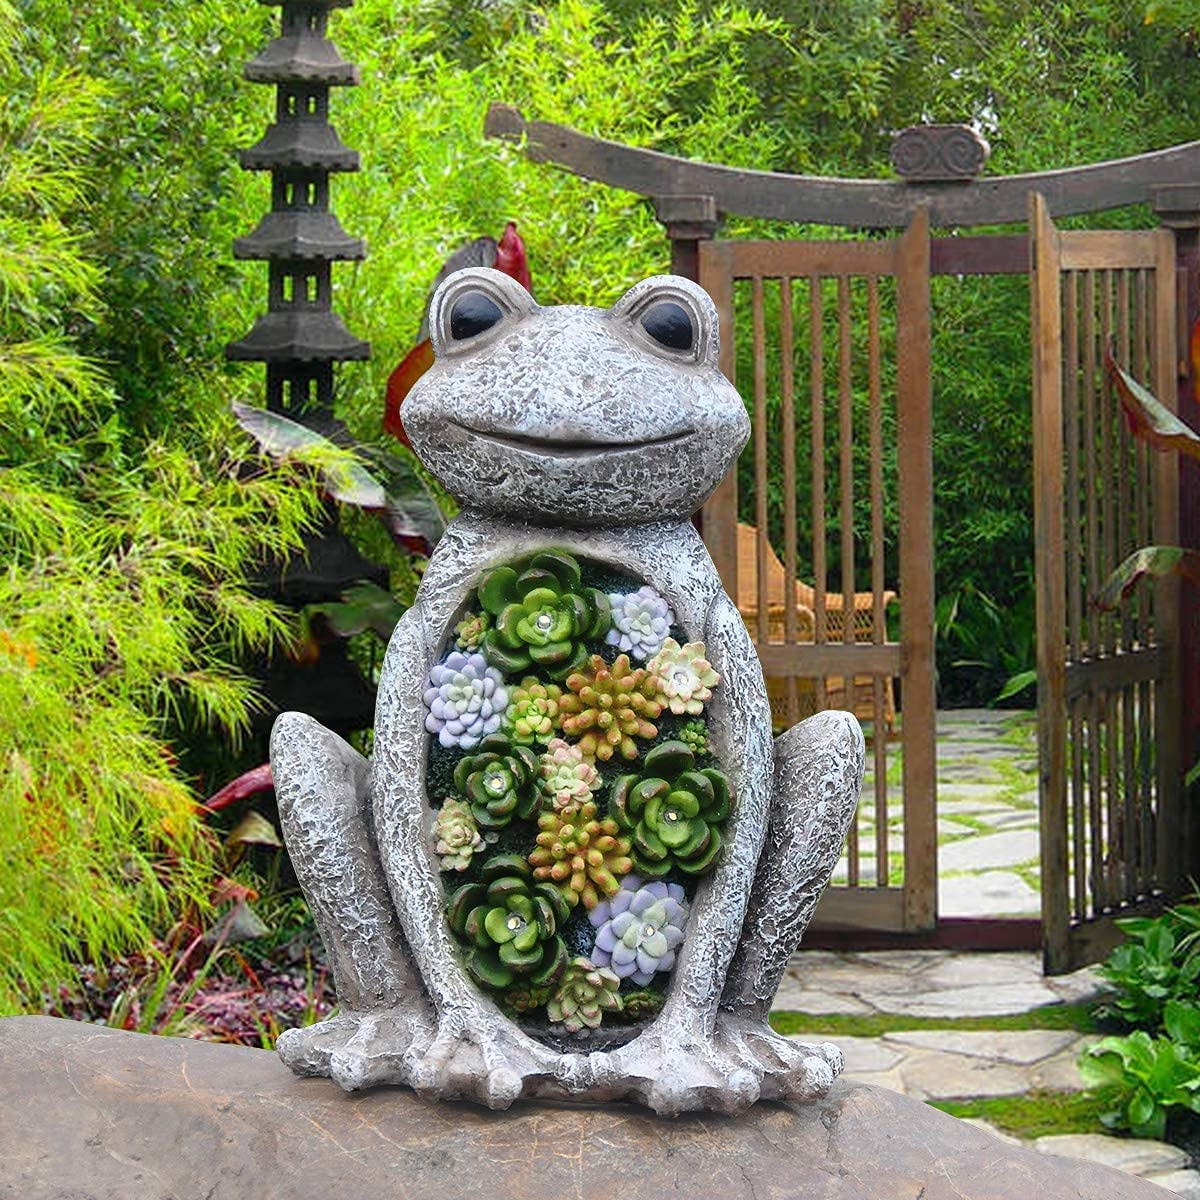 Garden Statue Frog Figurine - Waterproof Outdoor Statue with Solar Powered LED Lights for Halloween, Patio Yard Decorations,Lawn Decorations,Garden Gift,9.5 x 7.2 Inch